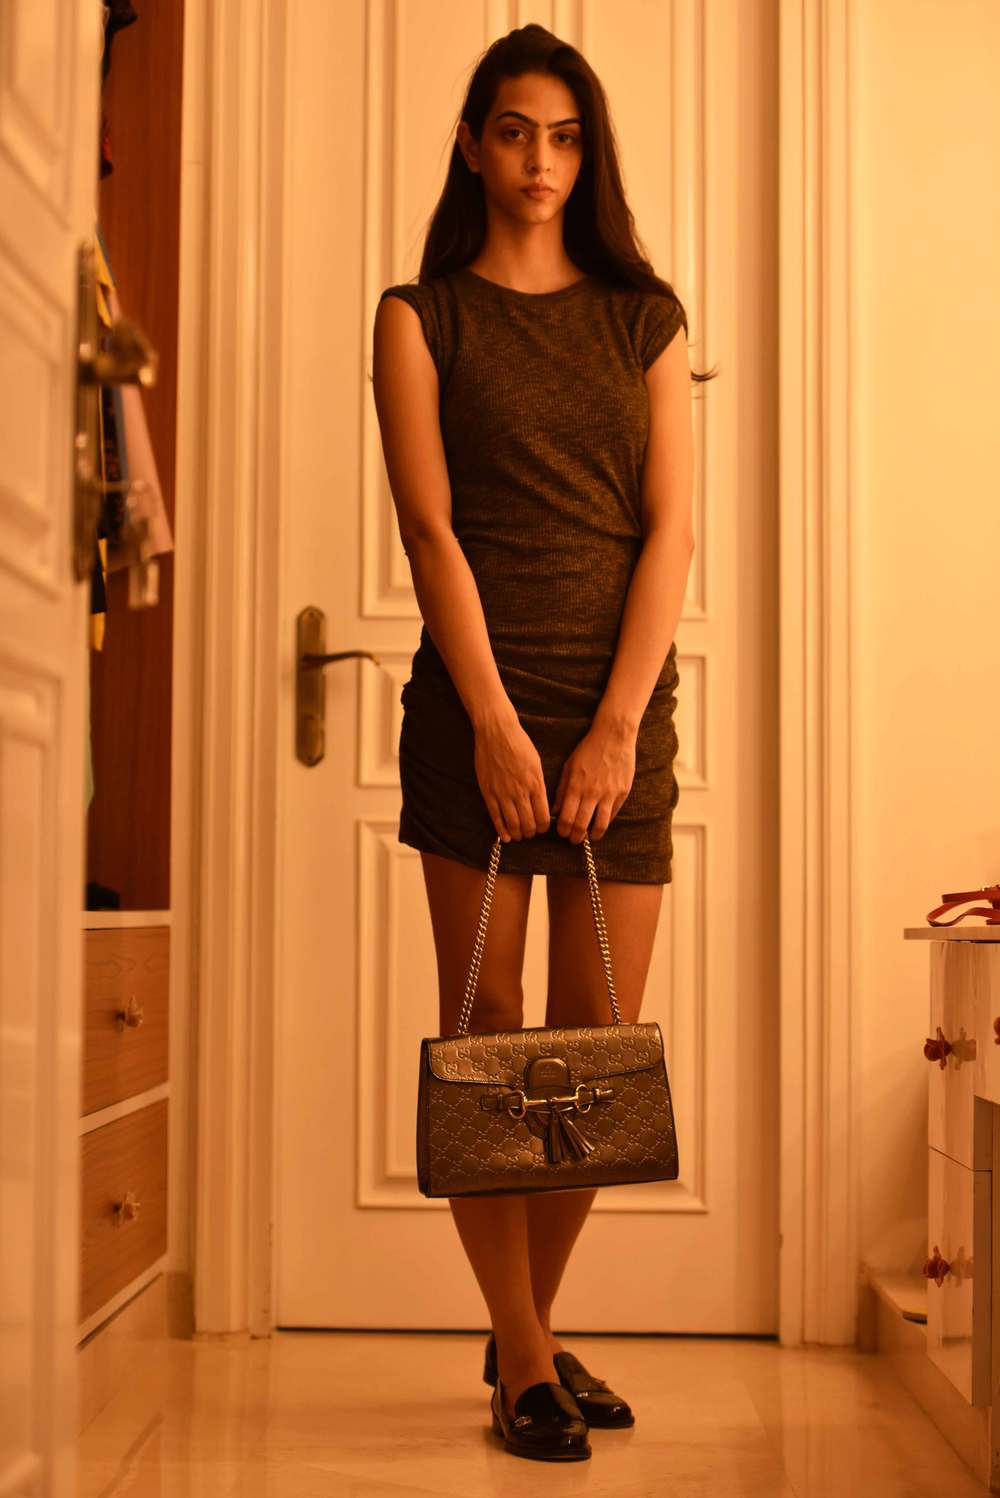 An evening wear look: a basic sheath dress with a Gucci evening bag and Chanel loafers. Model: Mannat Dhaliwal, Image©sourcingstyle.com